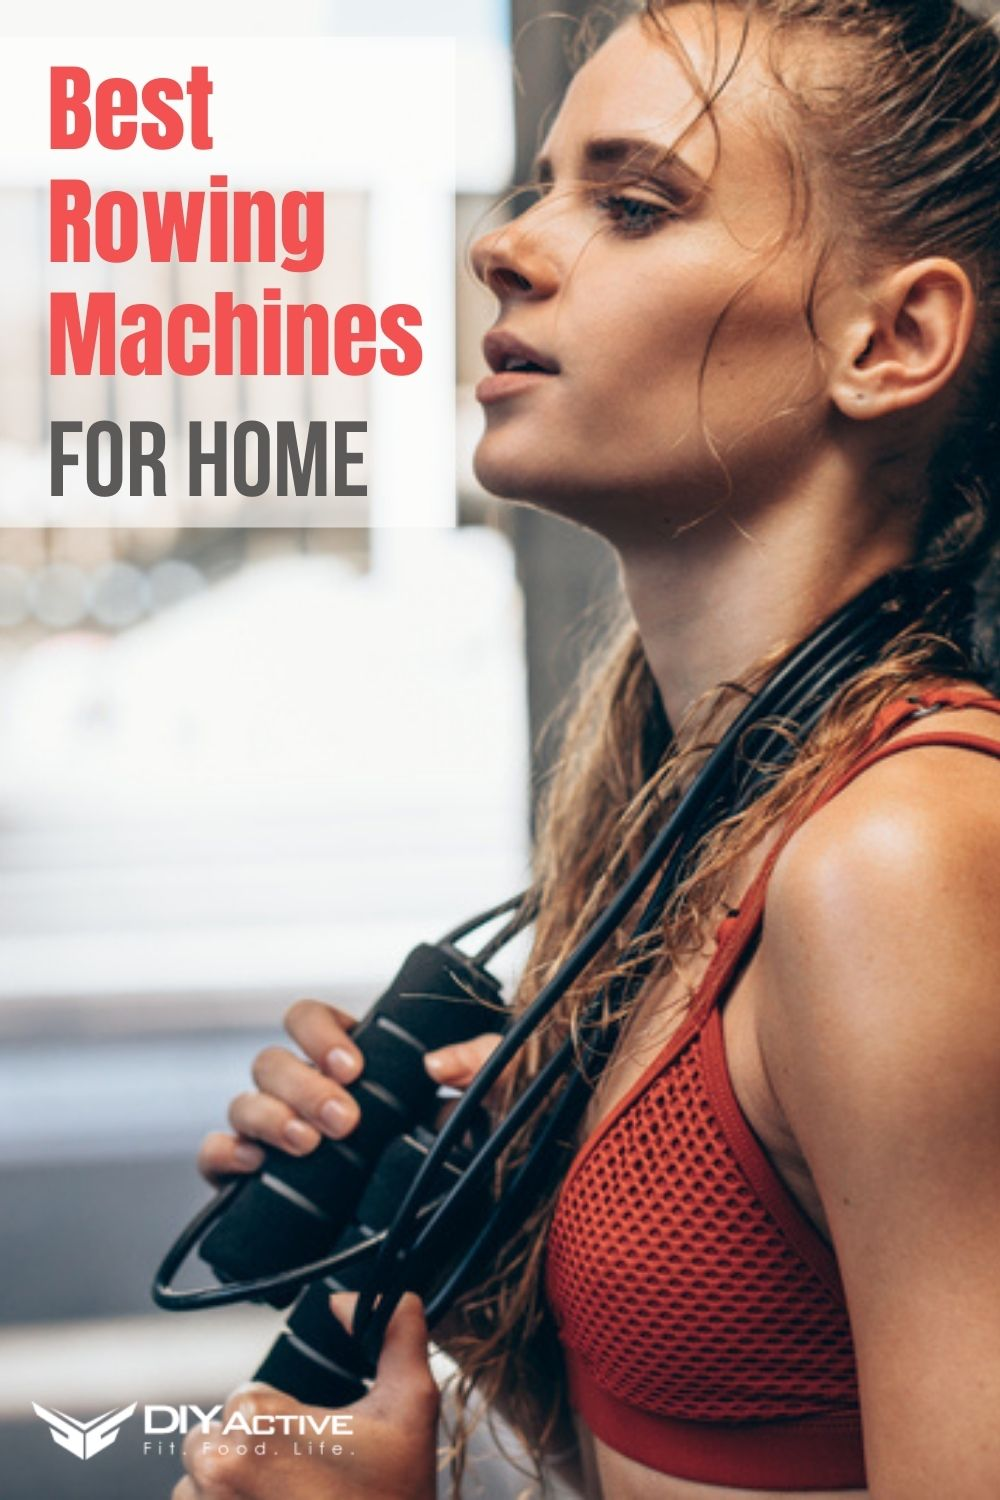 The Best Rowing Machines for Home